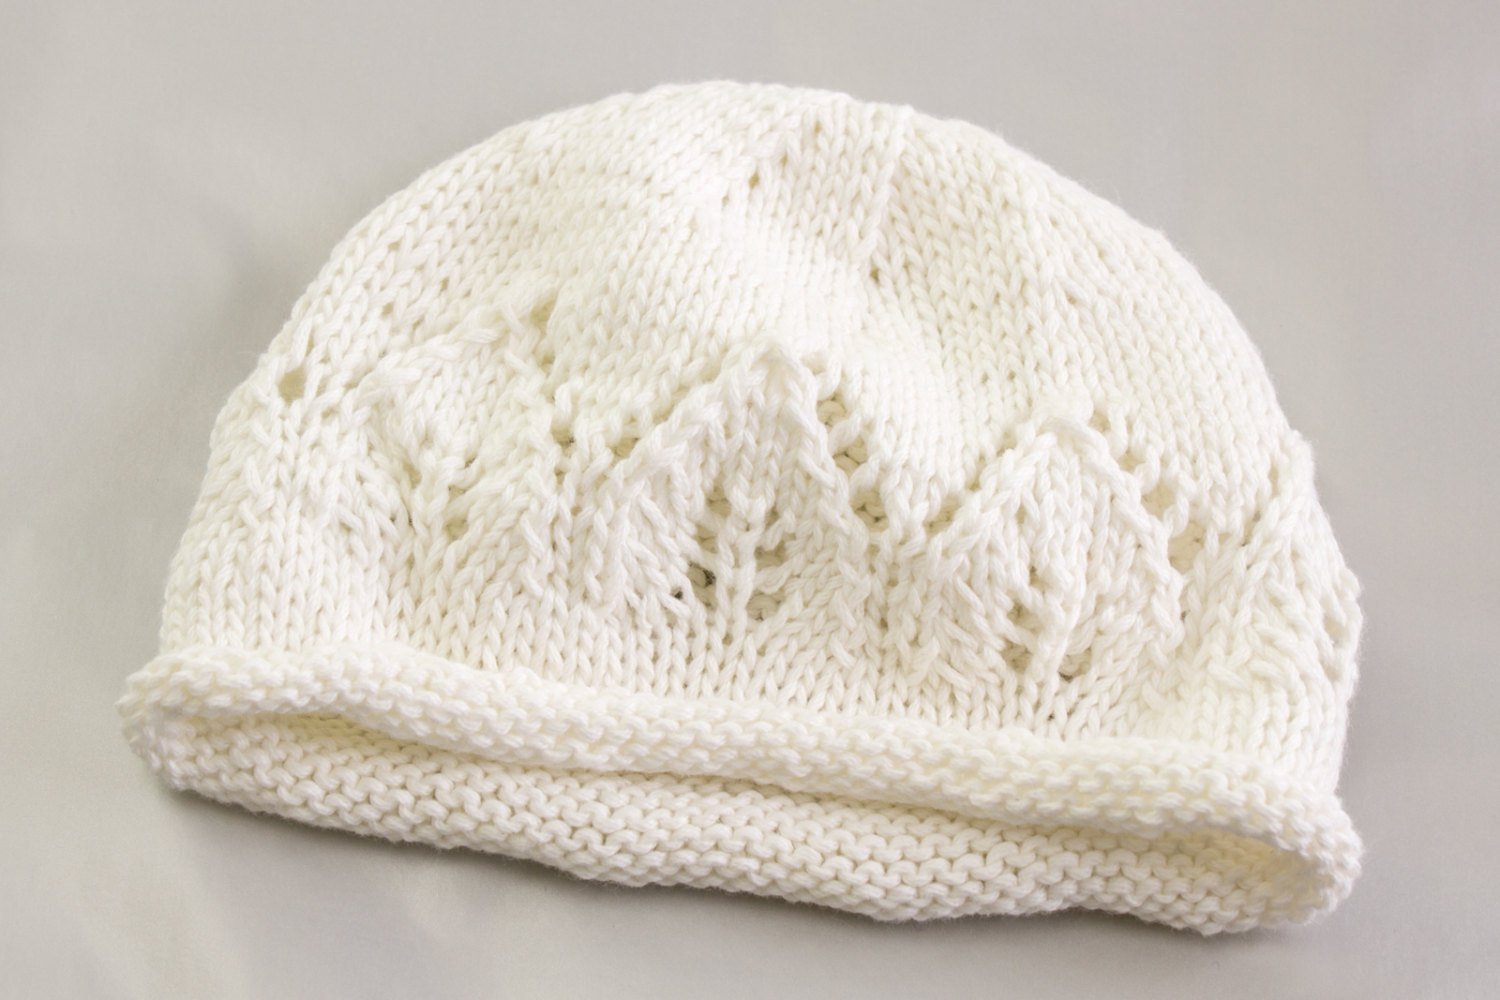 Baby Hat Knitting Pattern Lovely Knitting Pattern Newborn Baby Hat Baby Hat with Lace Panel Of New 44 Pictures Baby Hat Knitting Pattern